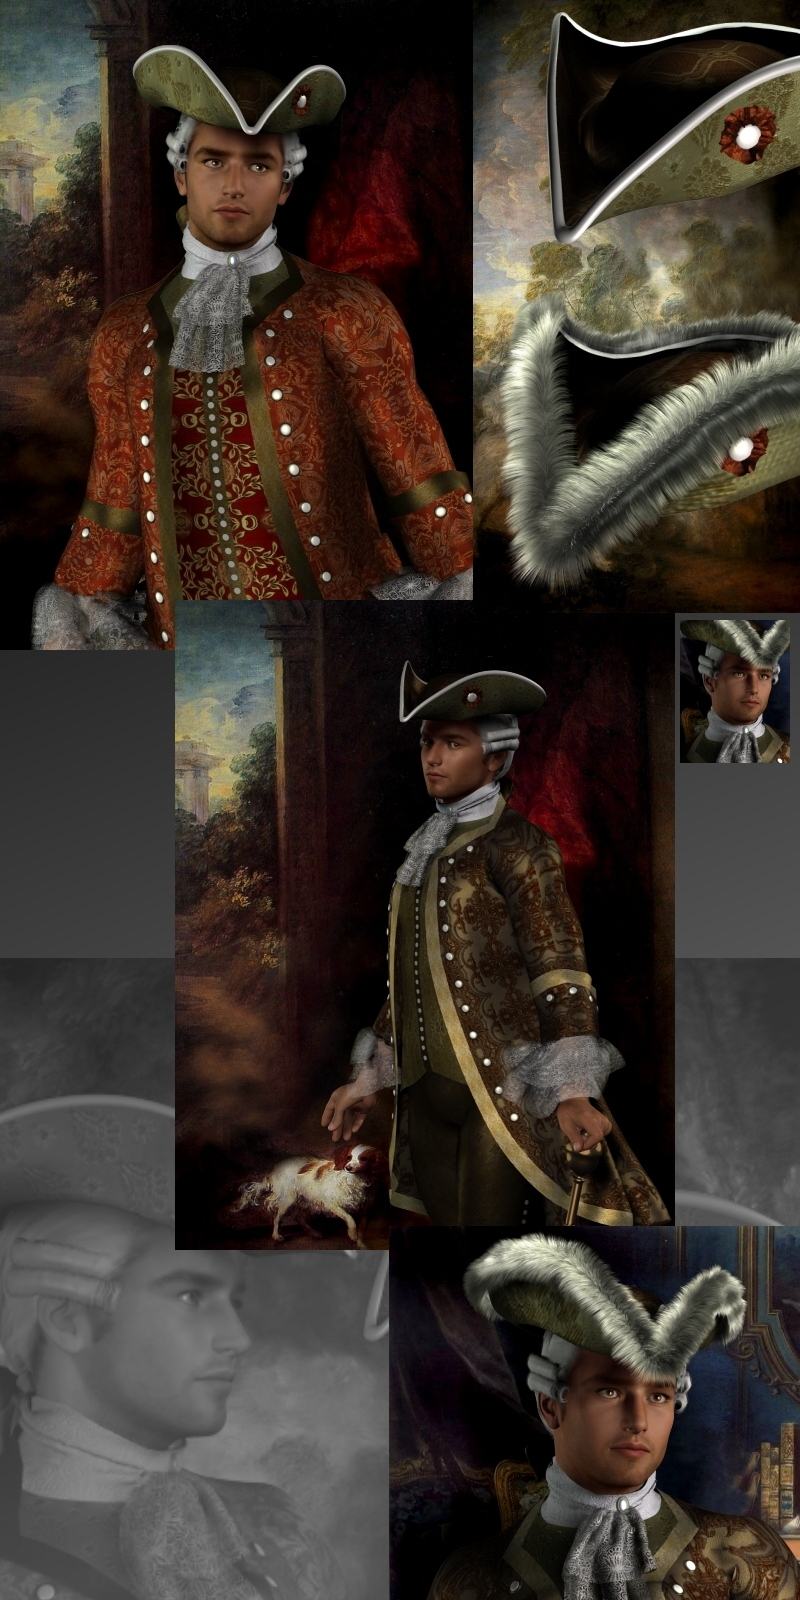 Francois-Philippe M4 18th Century Costume - Extended License